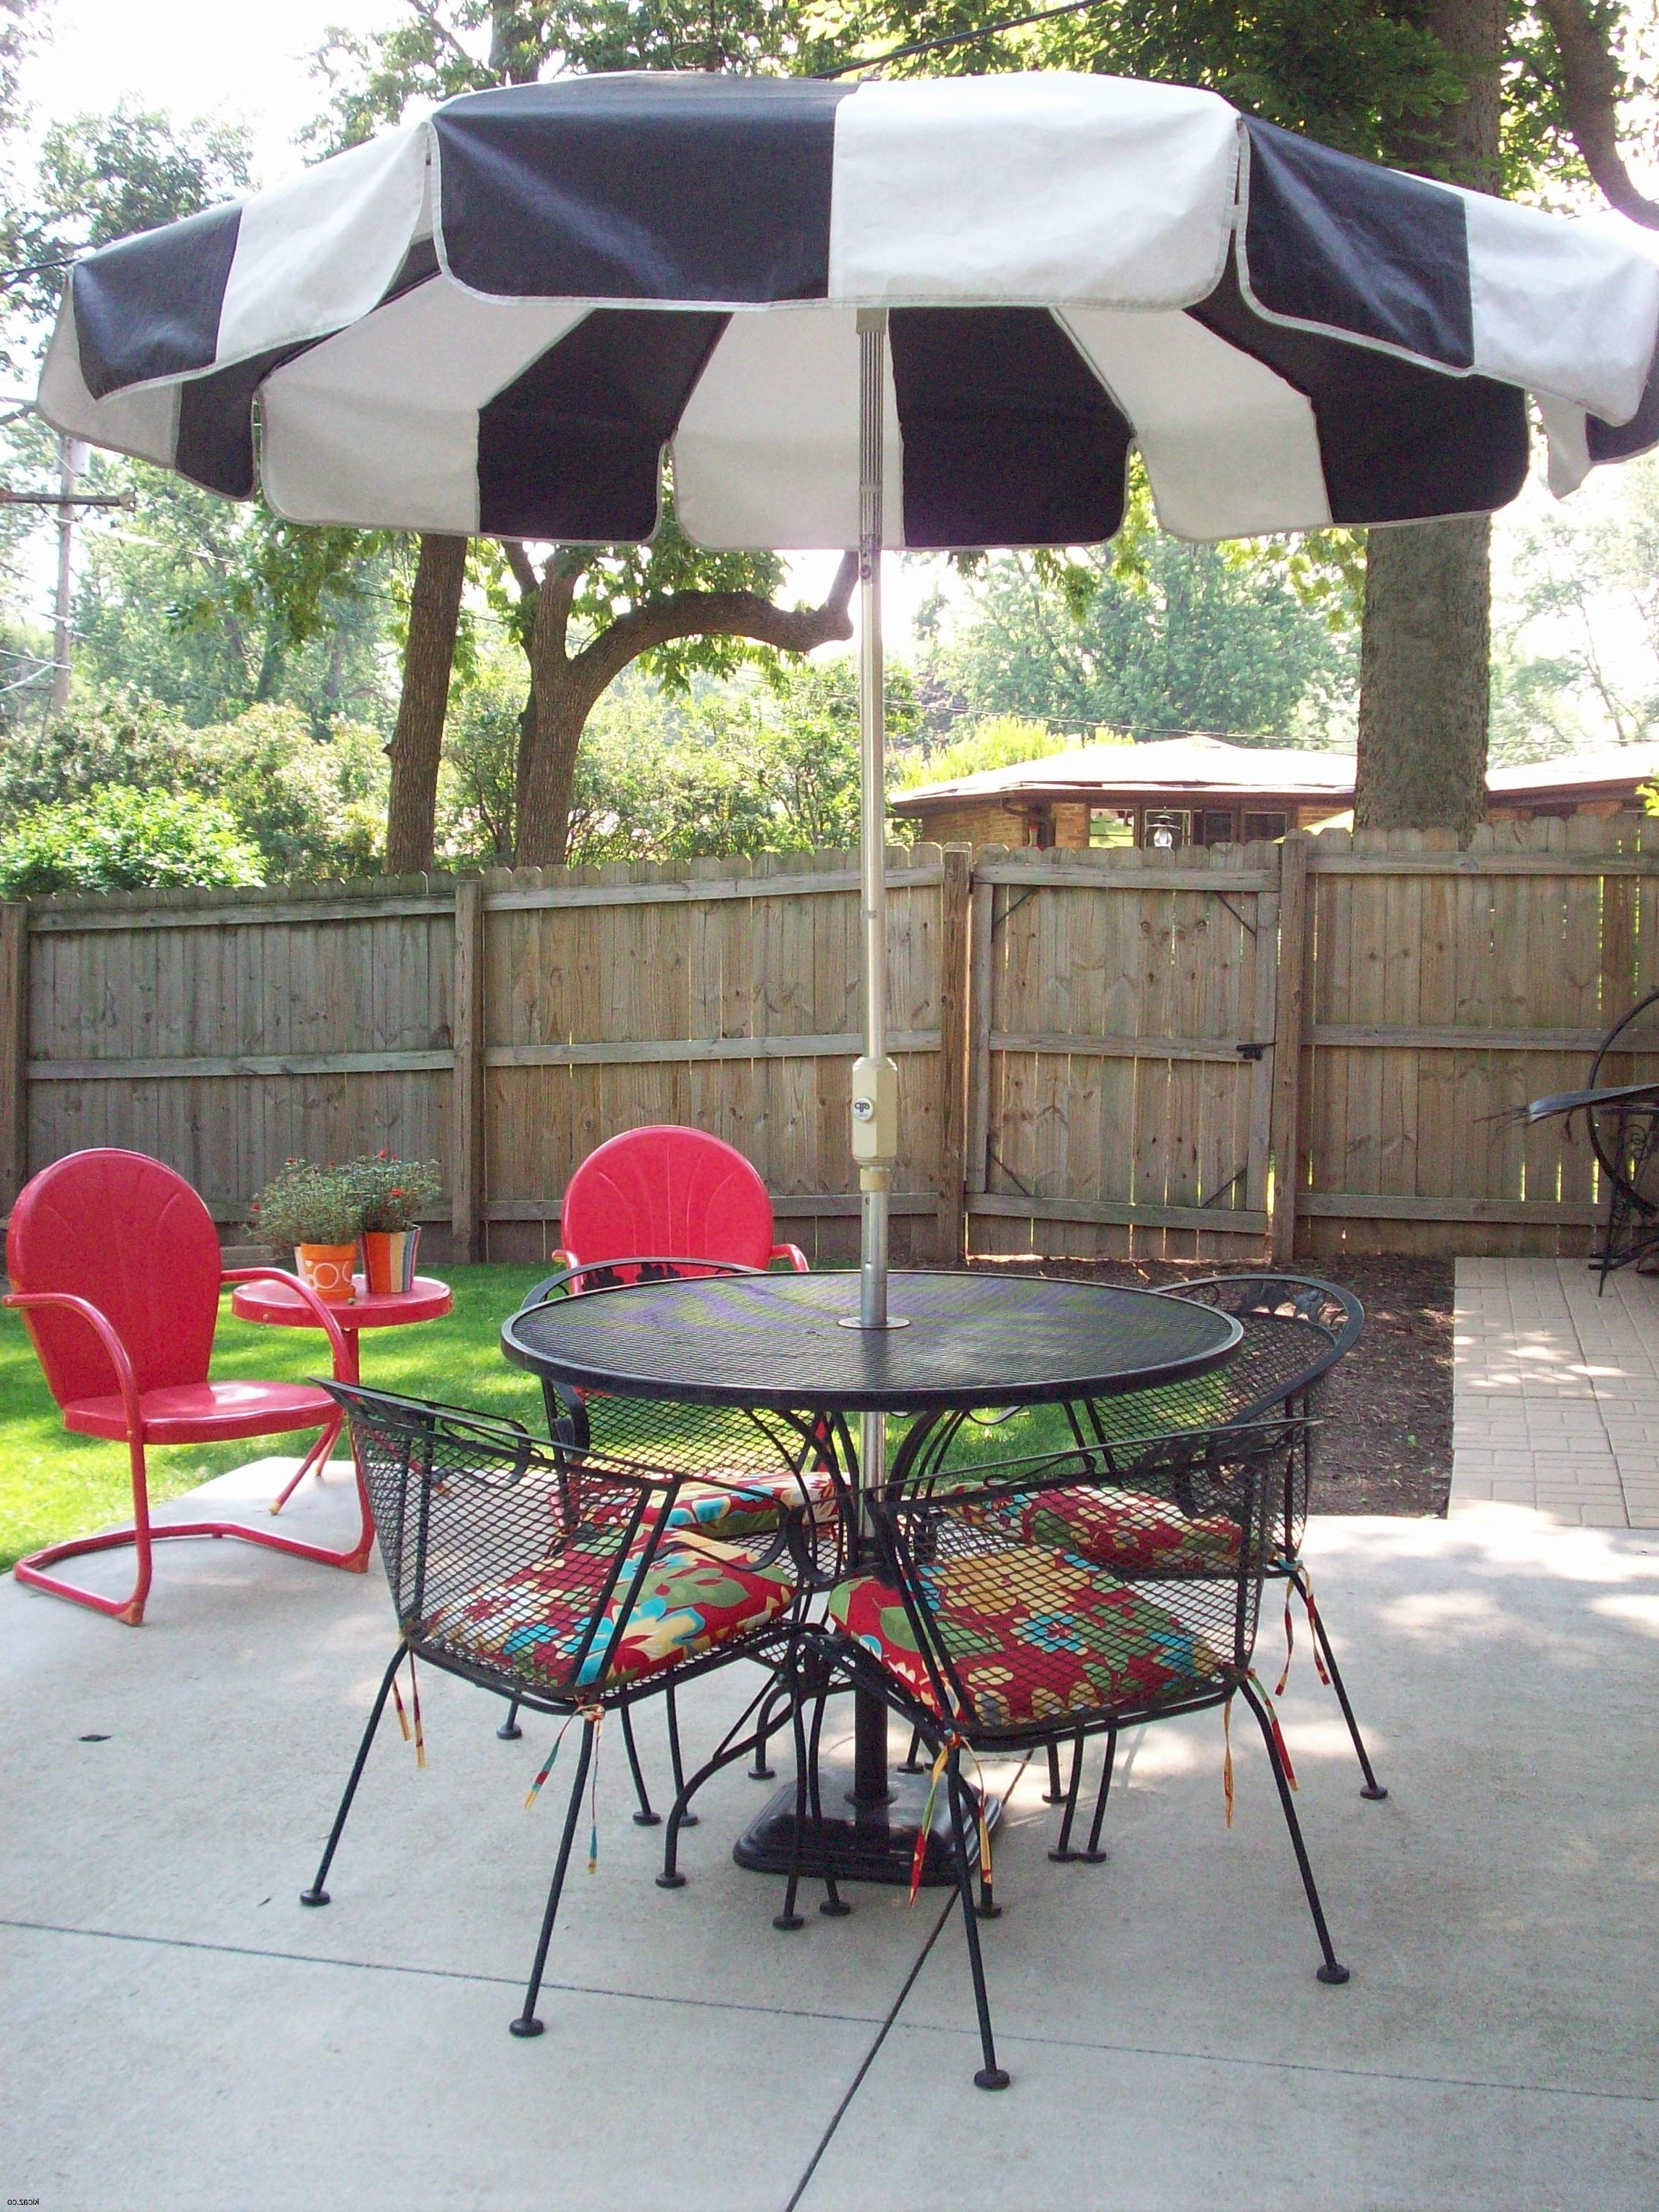 Widely Used Black And White Patio Umbrellas For Black And White Patio Umbrella (View 20 of 20)